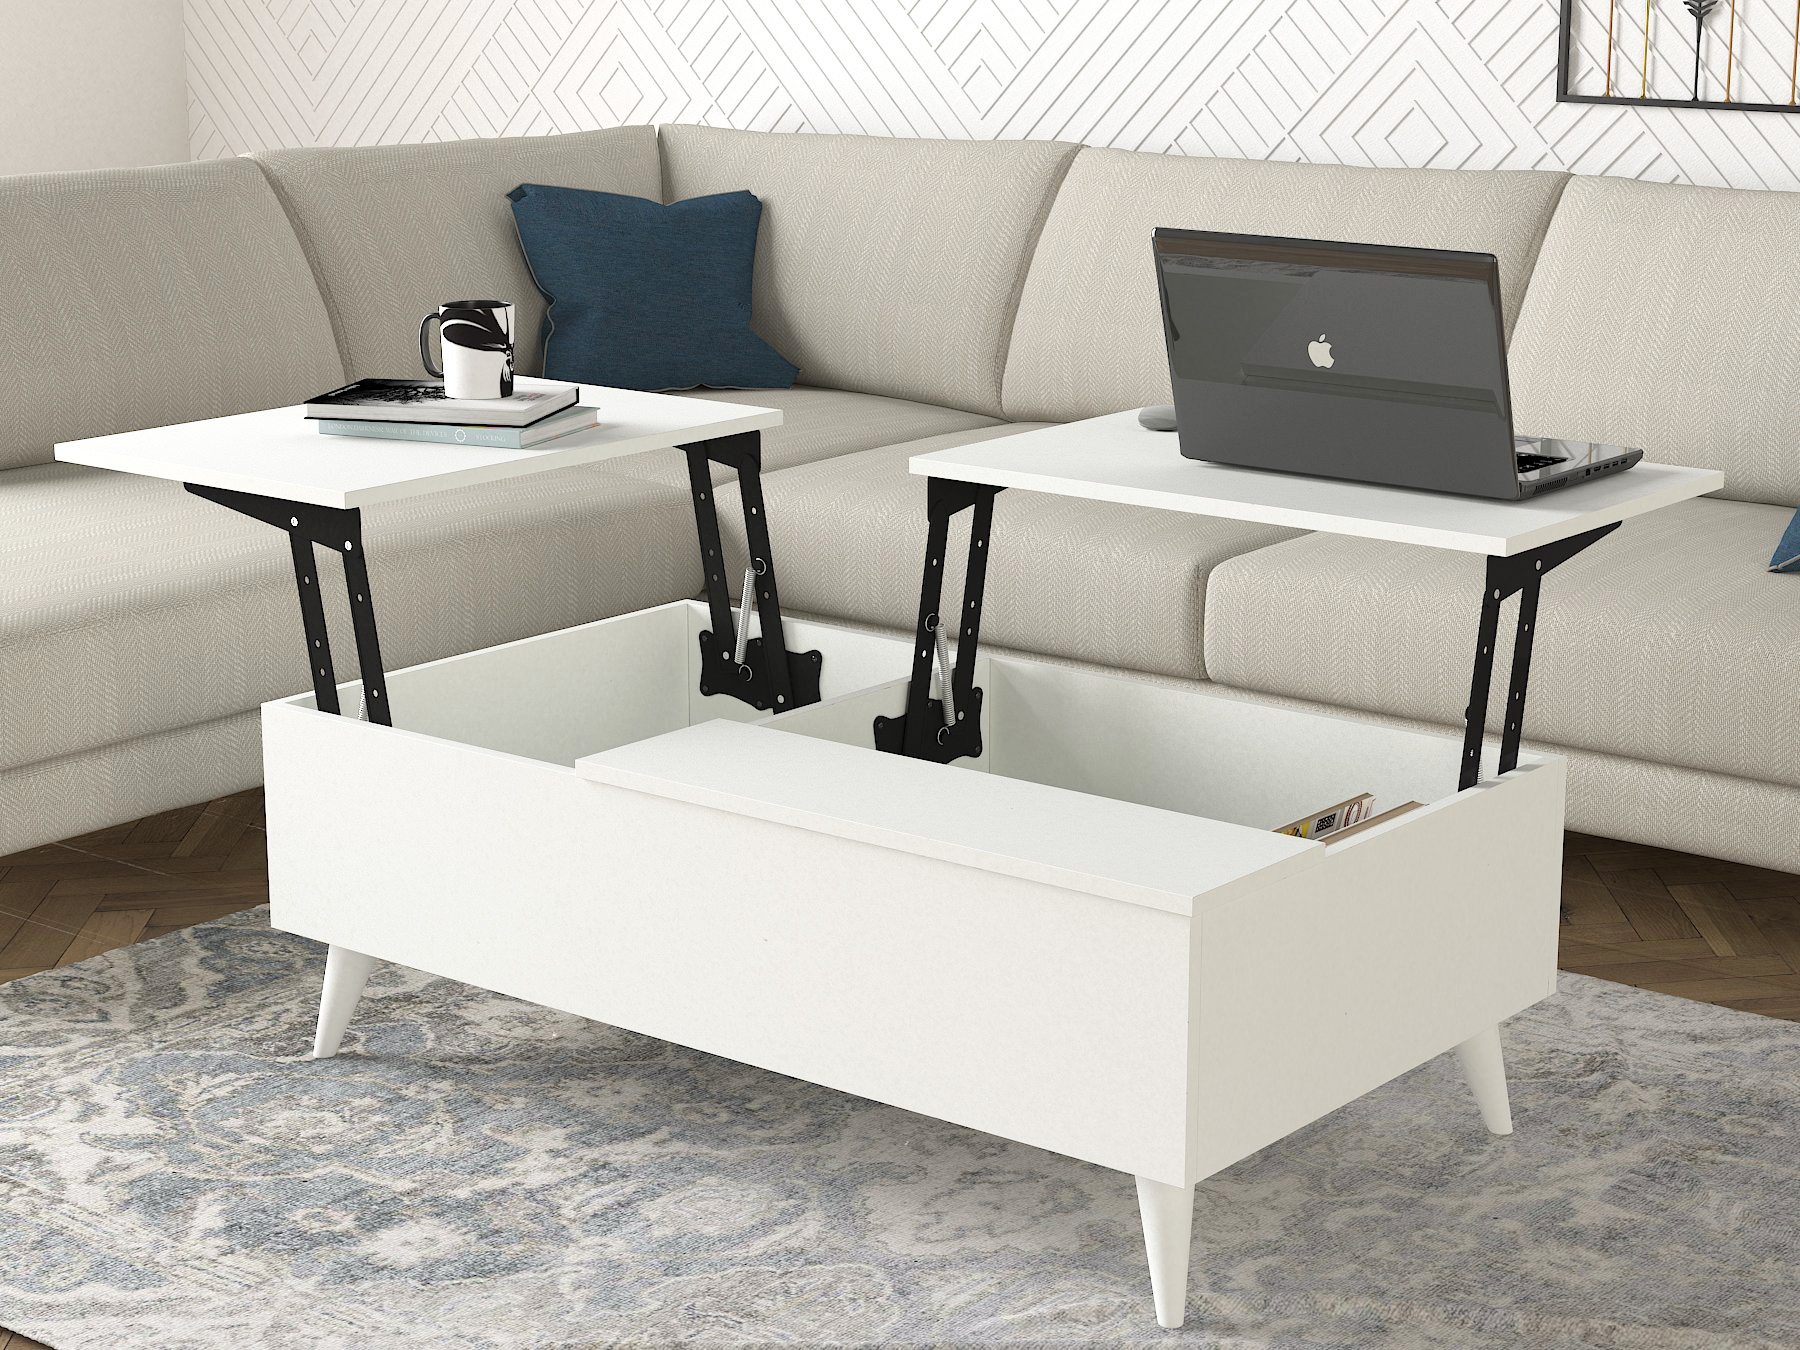 Sayre Blair Lift Top Coffee Table White Durable Environment Friendly Material Pvc Edge Banding Walmart Com Walmart Com